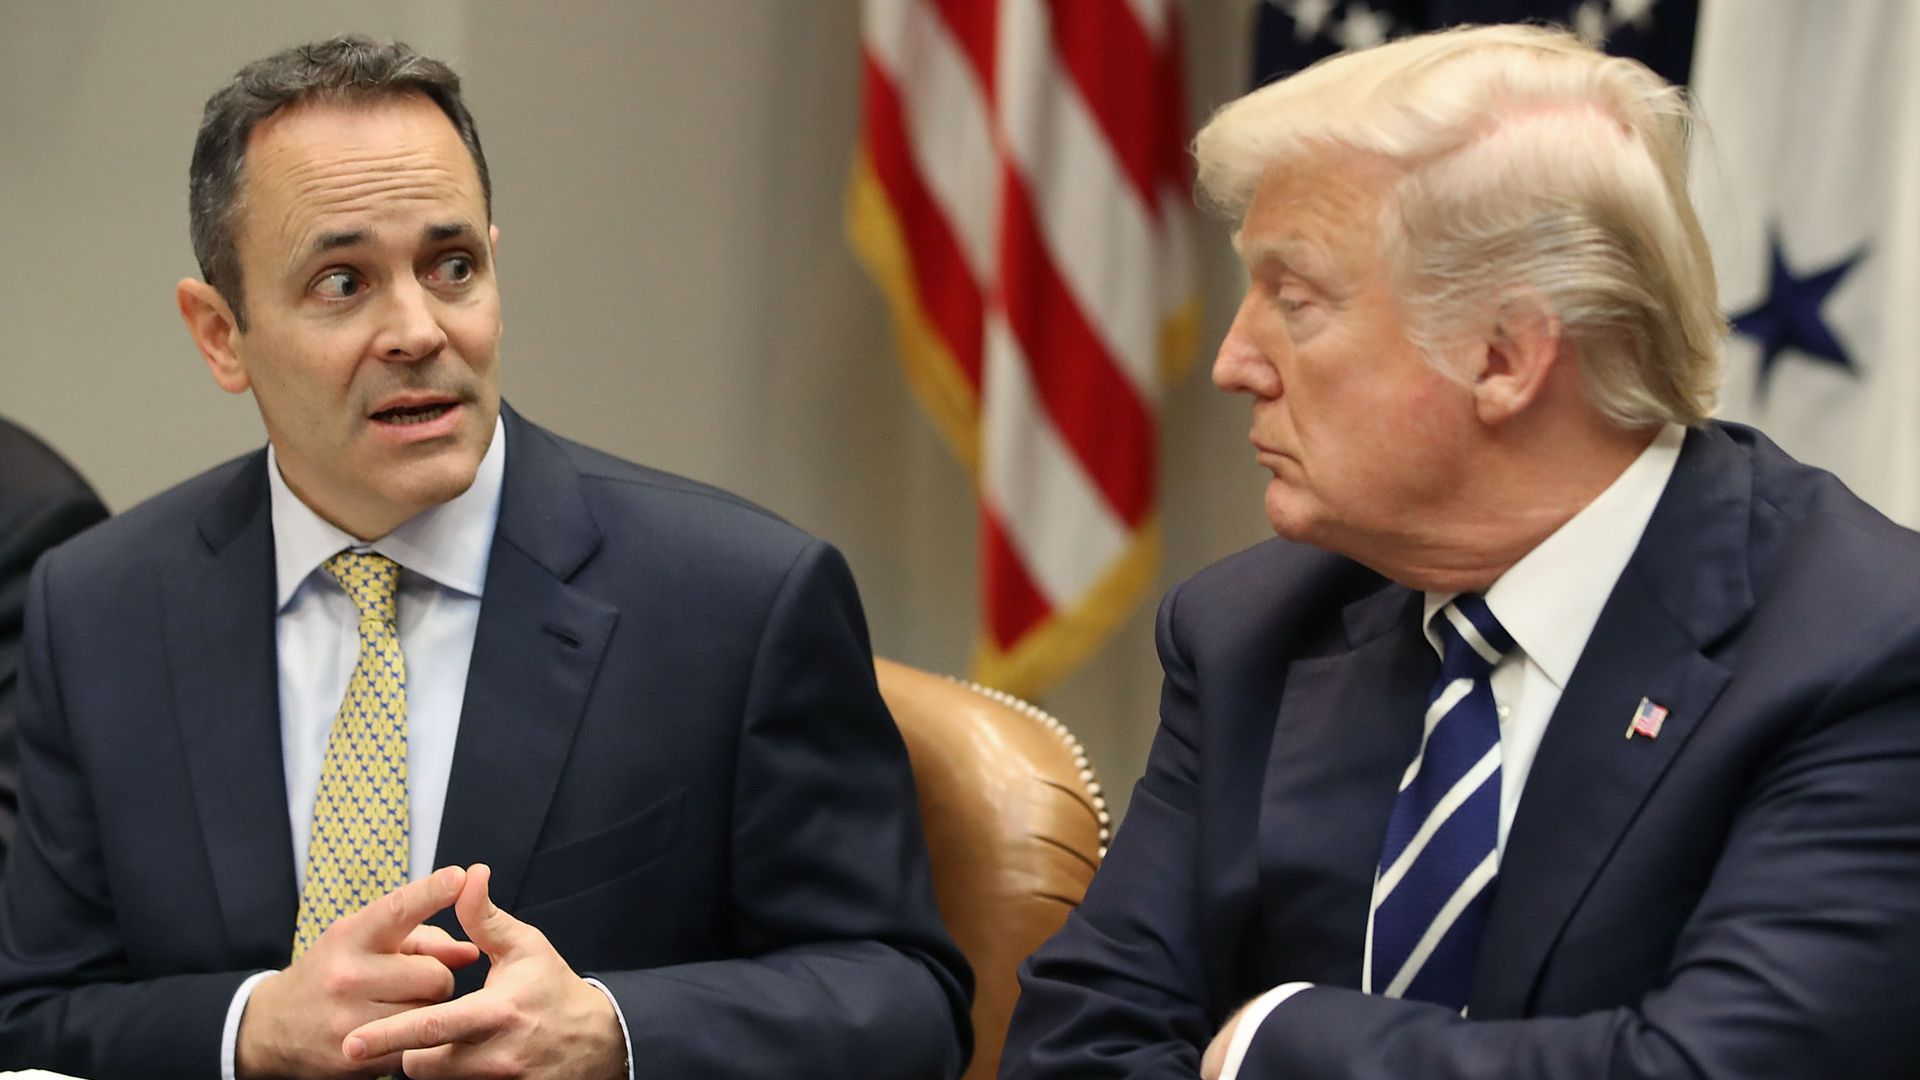 Kentucky Gov. Matt Bevin and President Trump.